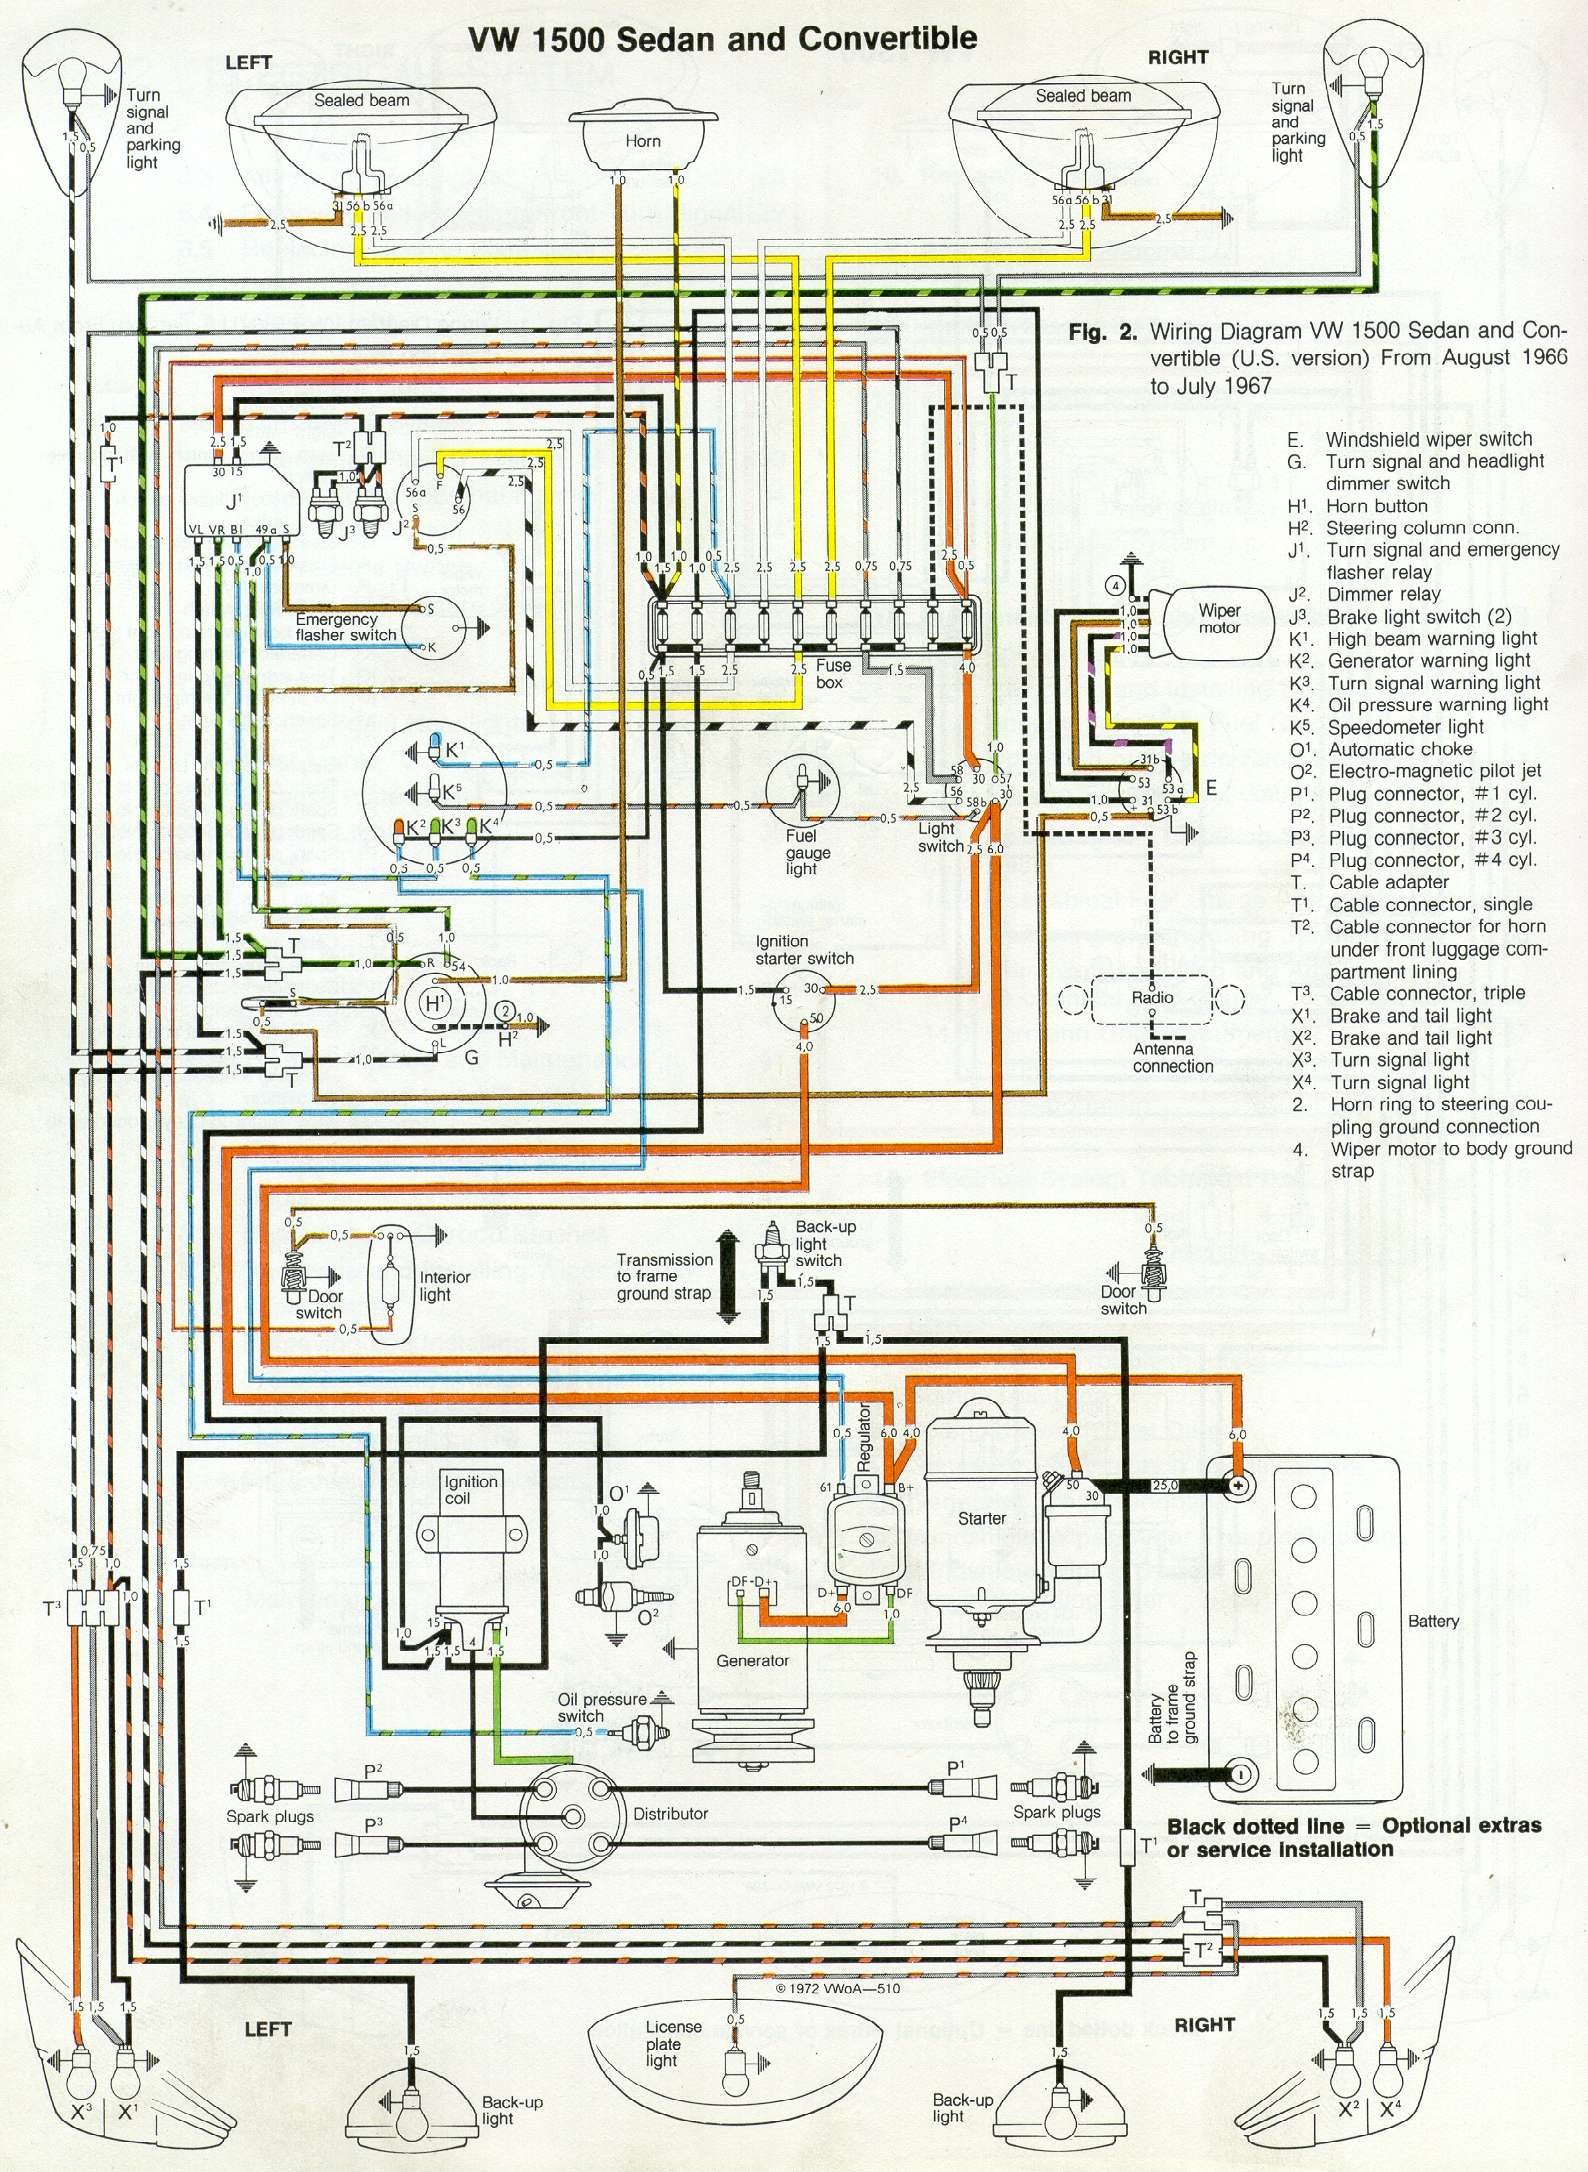 other diagrams rh wiring wizard com VW Karmann Ghia VW Notchback